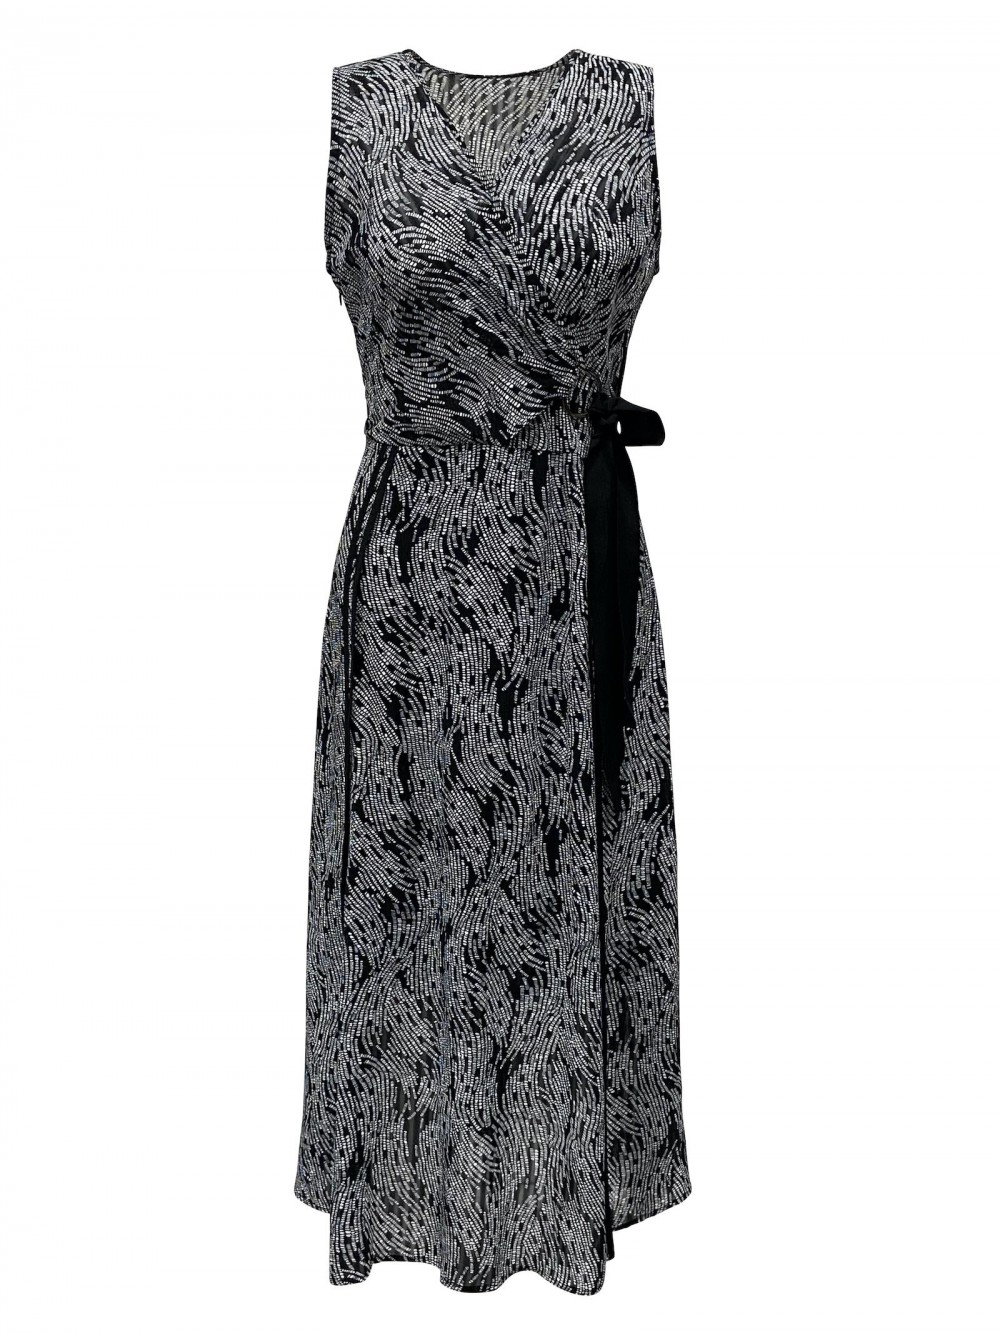 Dress RIVA black/white